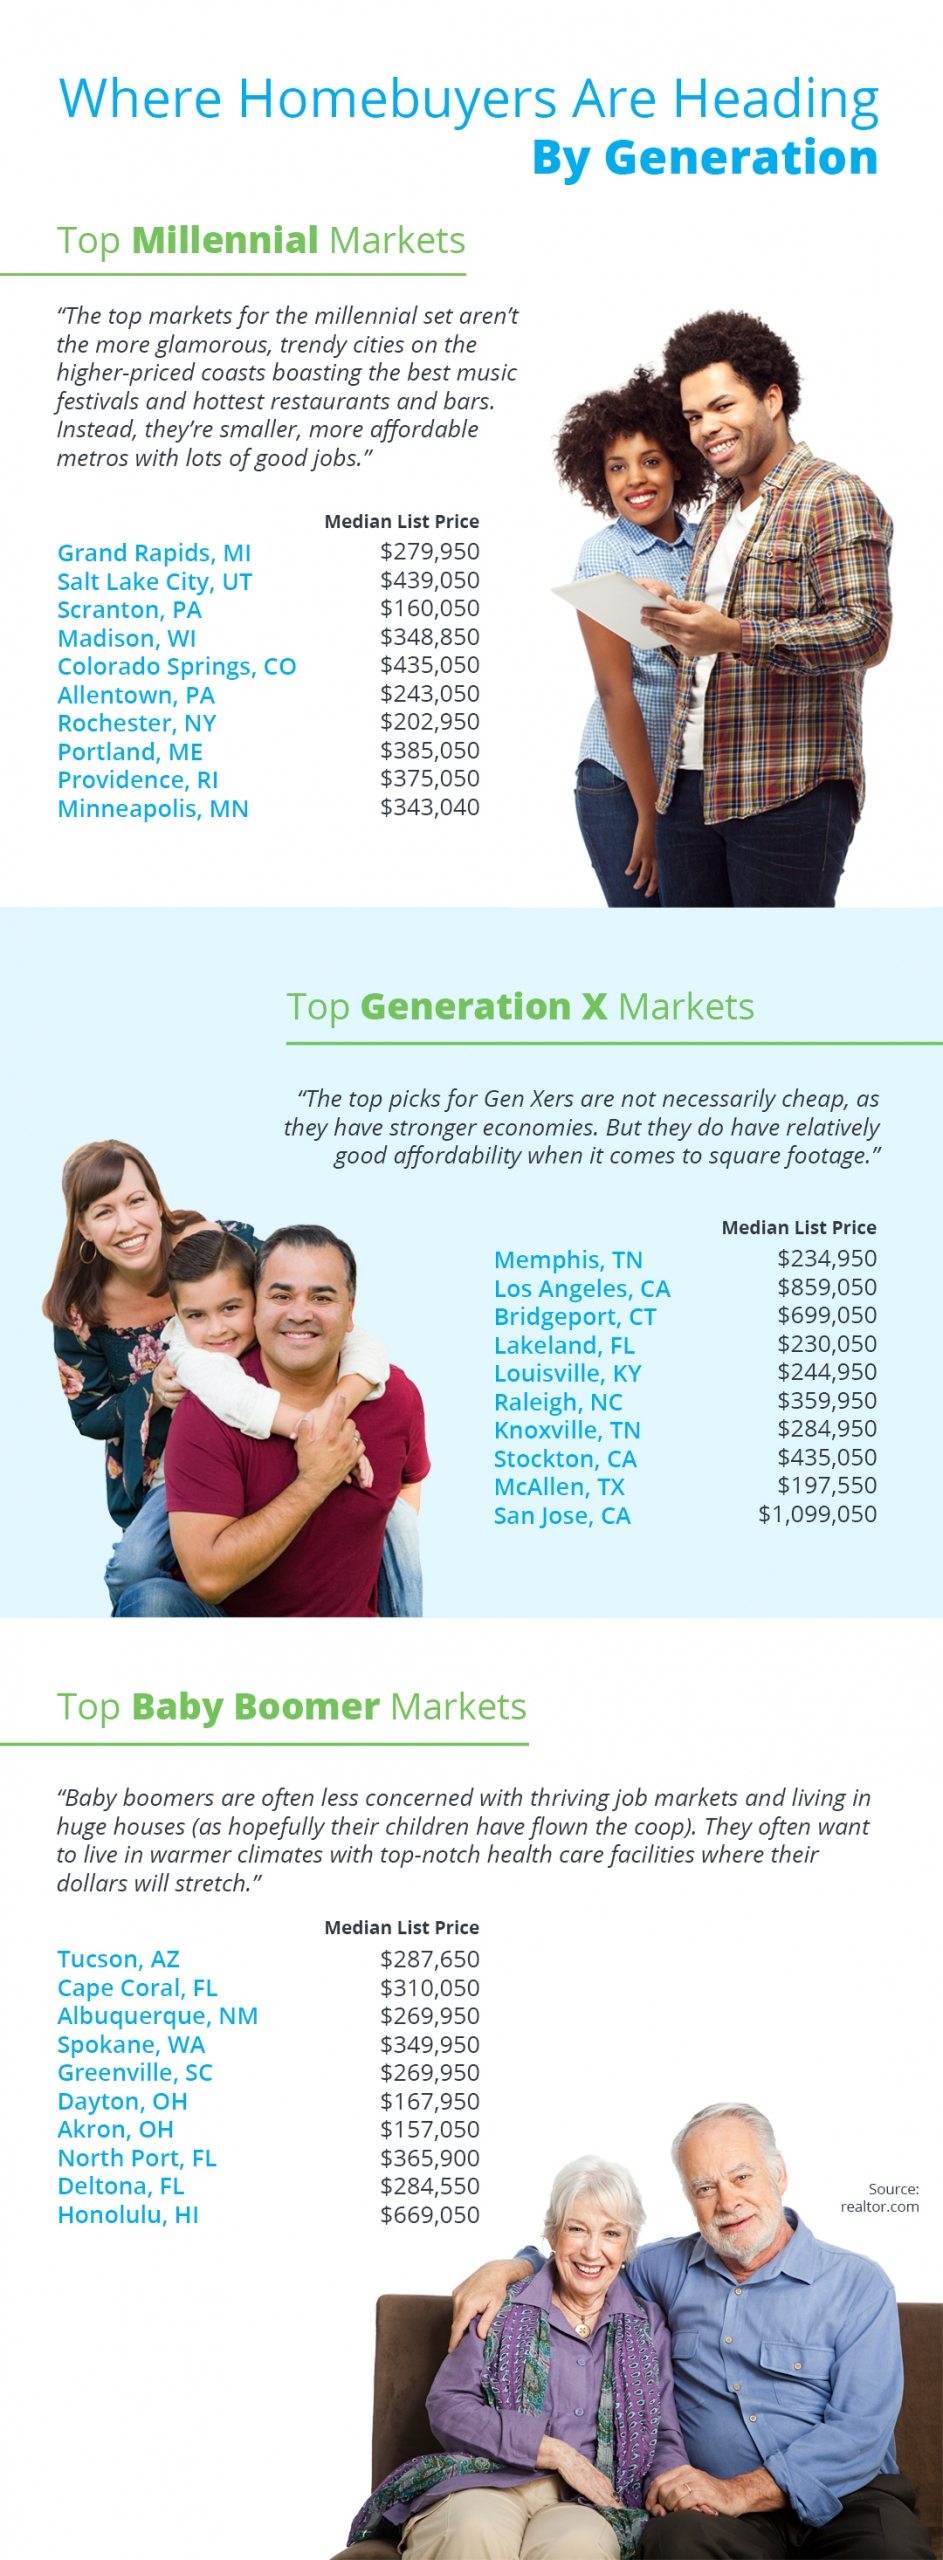 Where Homebuyers Are Heading By Generation [INFOGRAPHIC] | Bridge Builders